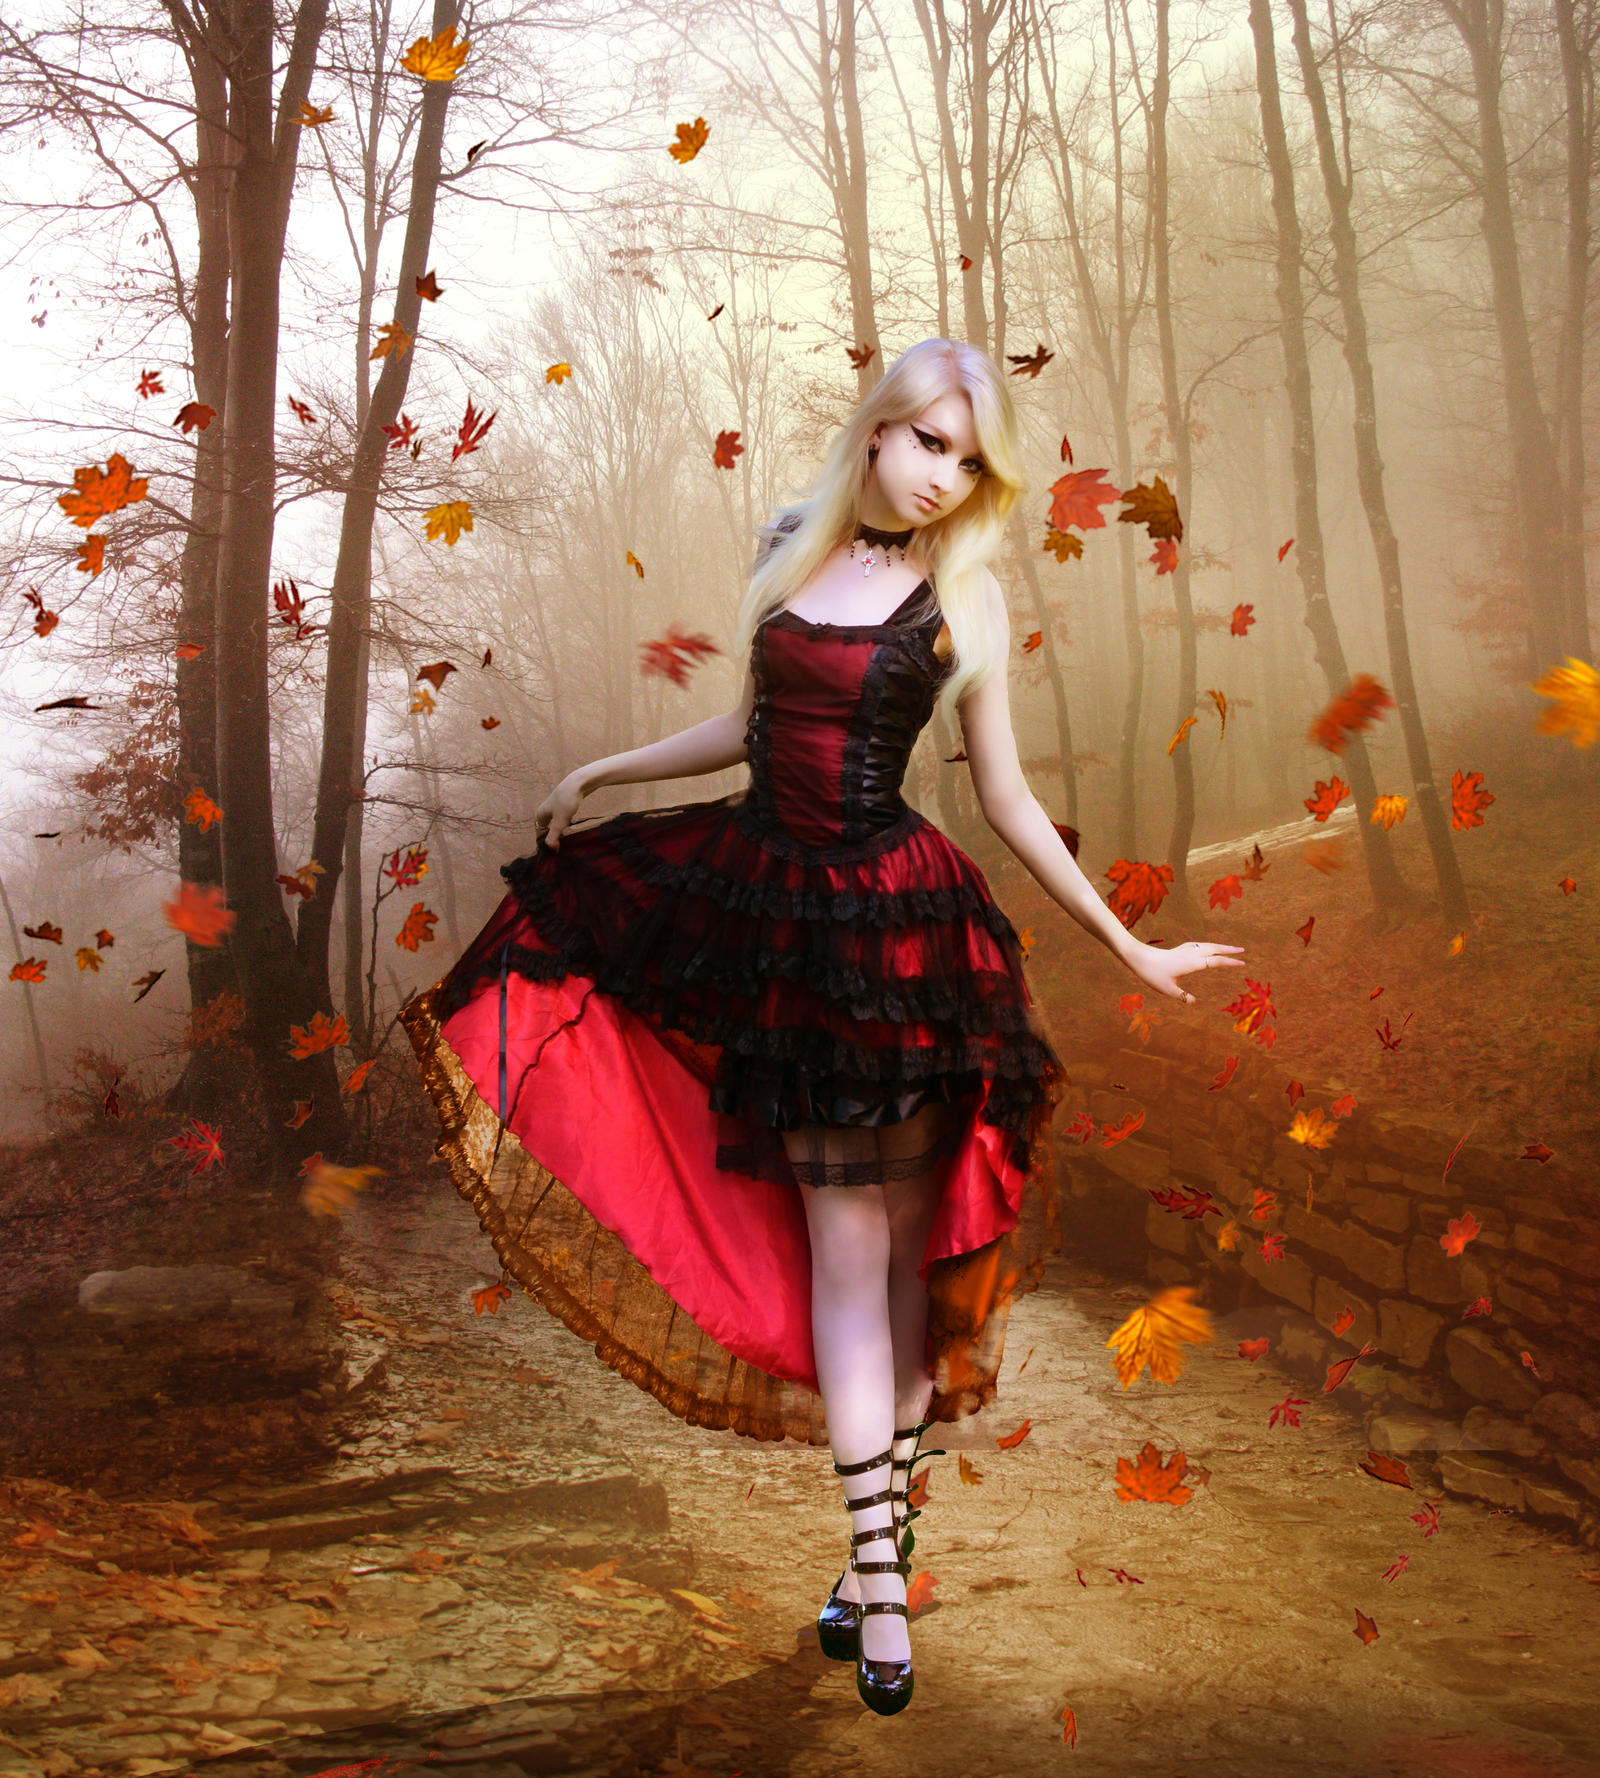 Autumn Waltz by InertiaK